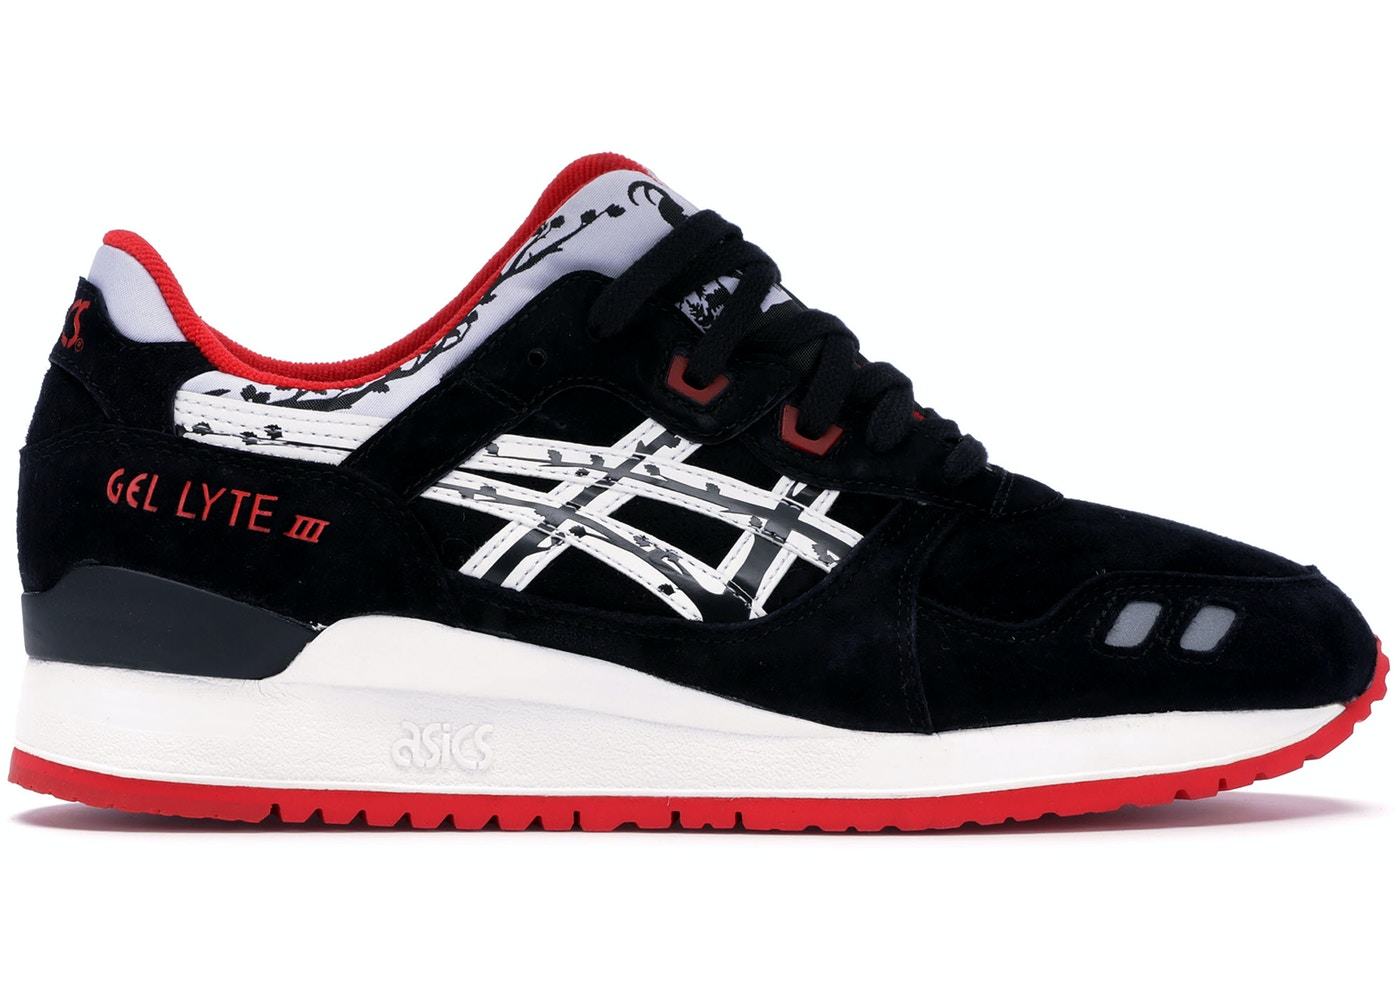 separation shoes 72530 93751 ASICS Gel-Lyte III Titolo